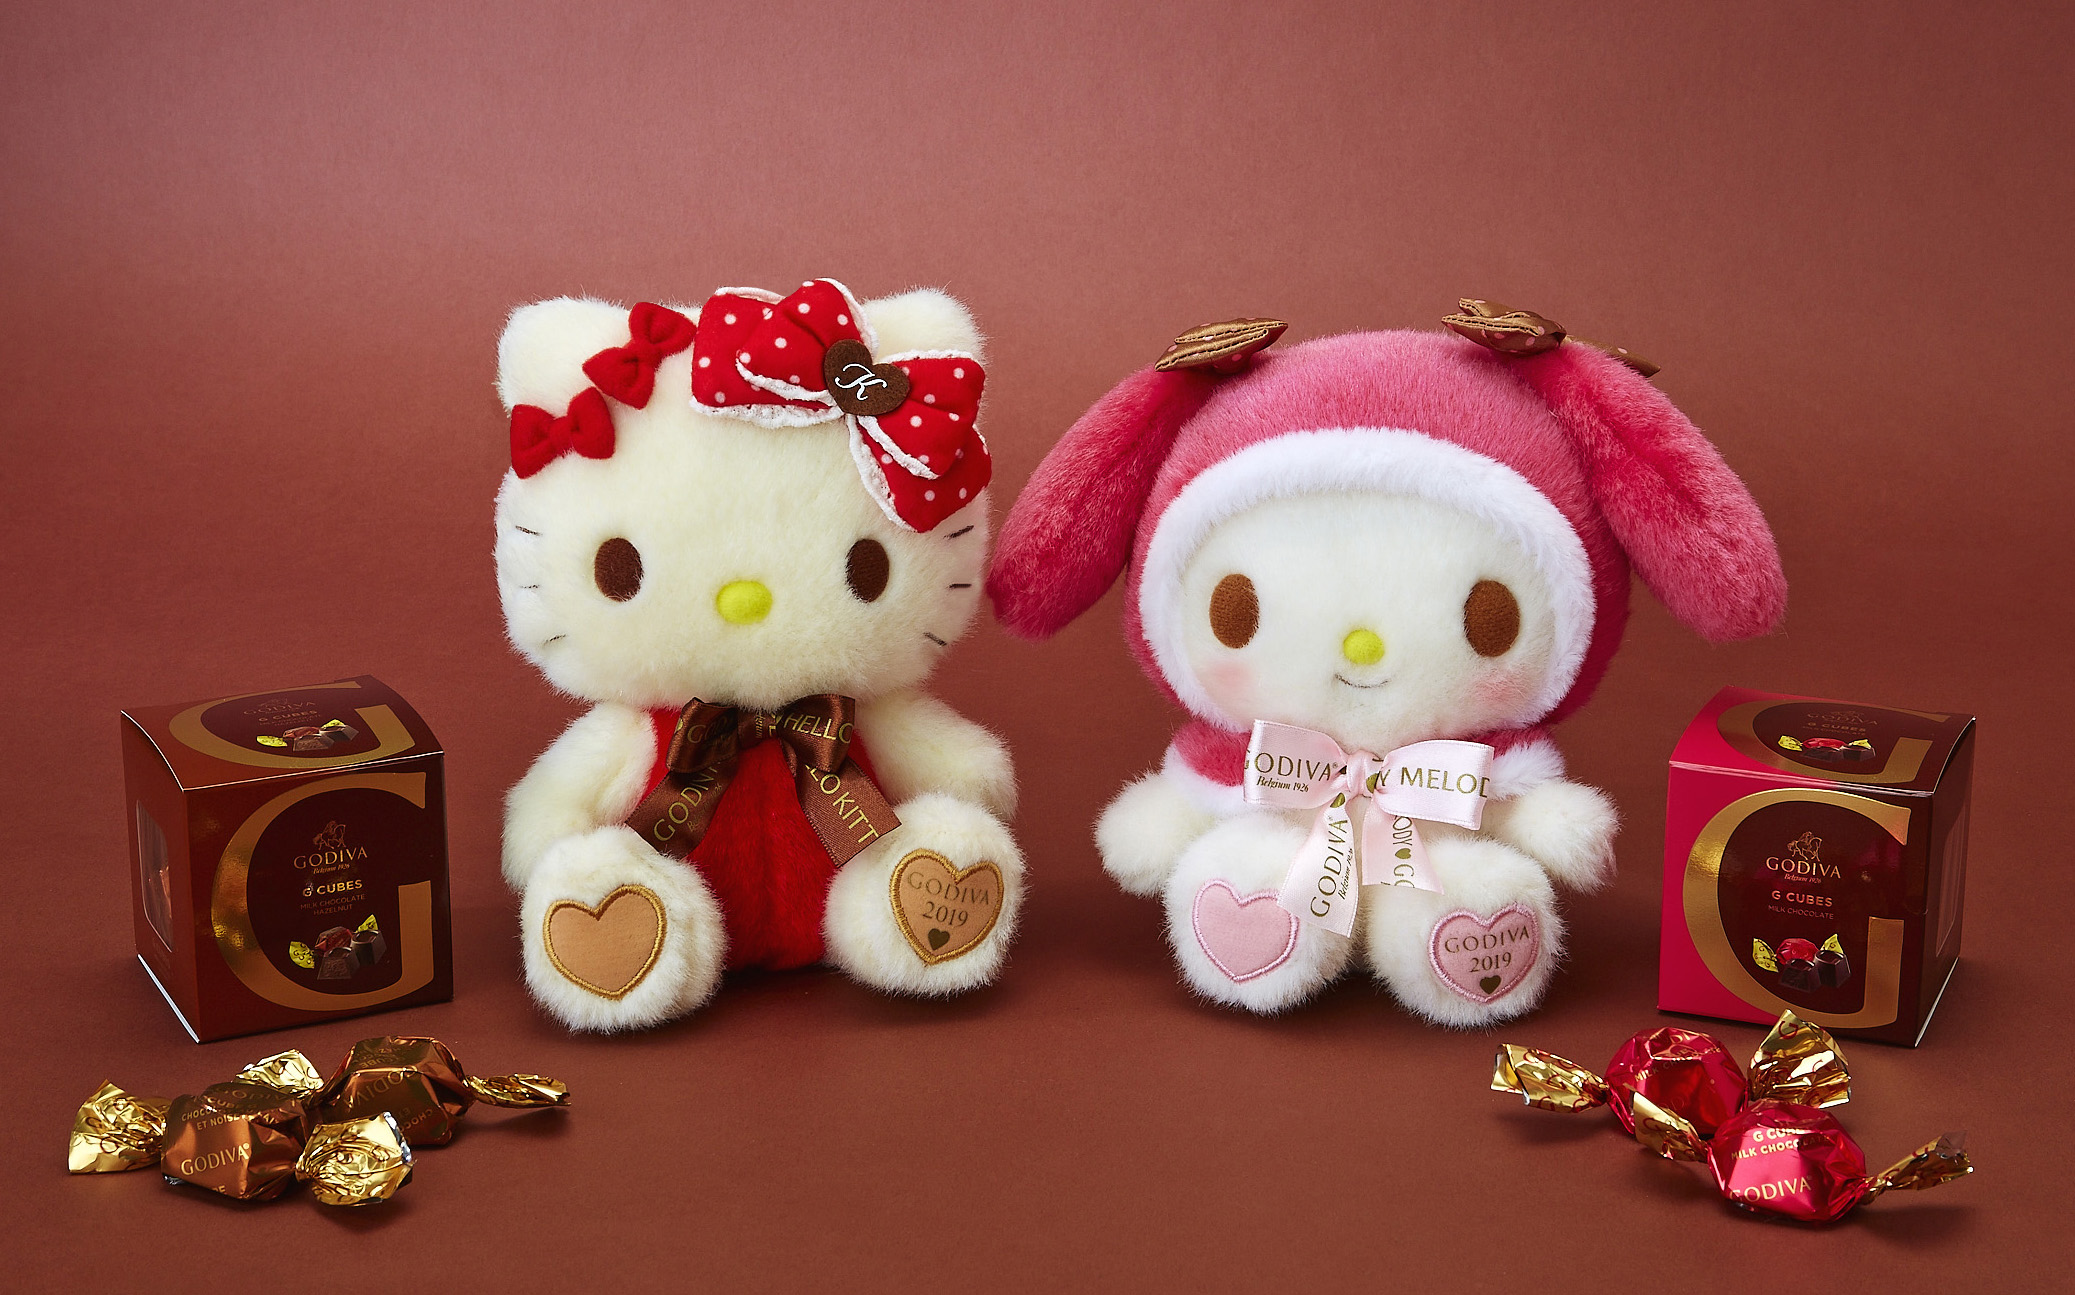 672894a4c Hello Kitty & My Melody Gift Sets by GODIVA Released at Sanrio ...